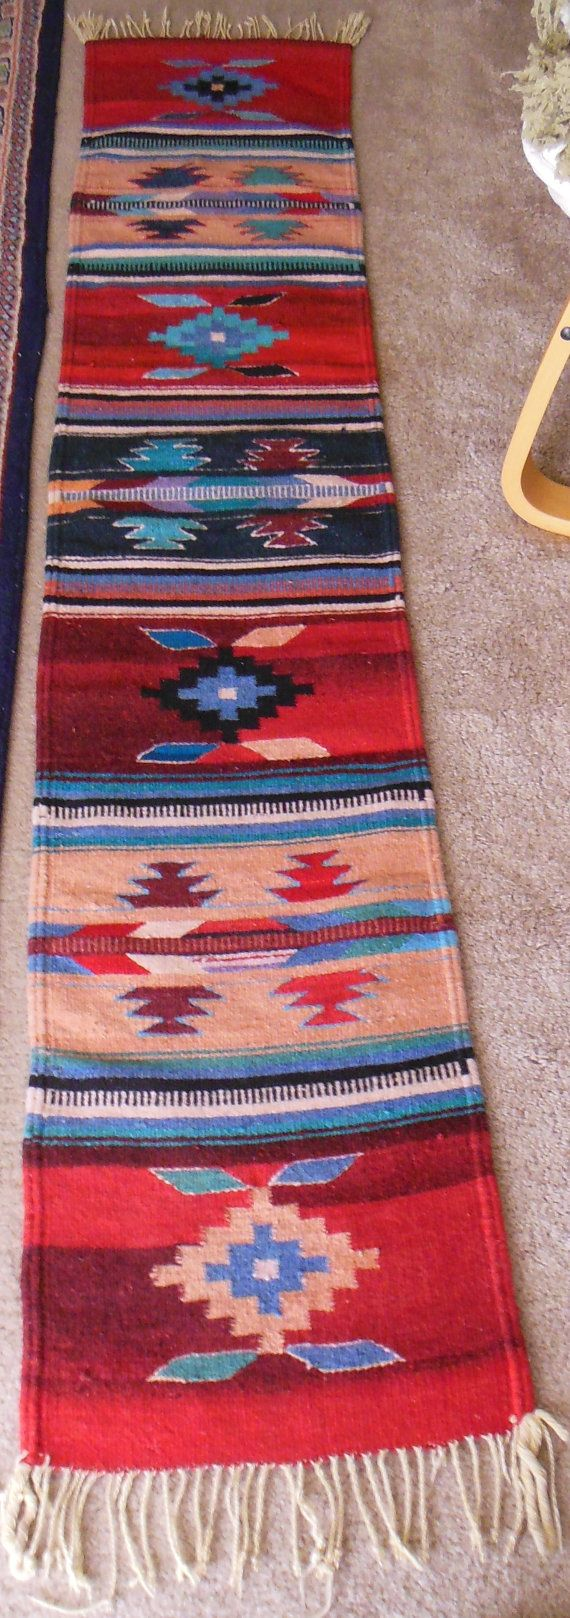 SouthWestern Runner Mexican Western Indian Style Handmade Wool Carpet  Colorful Extra Long Geometric Patterns Cowgirl Decor